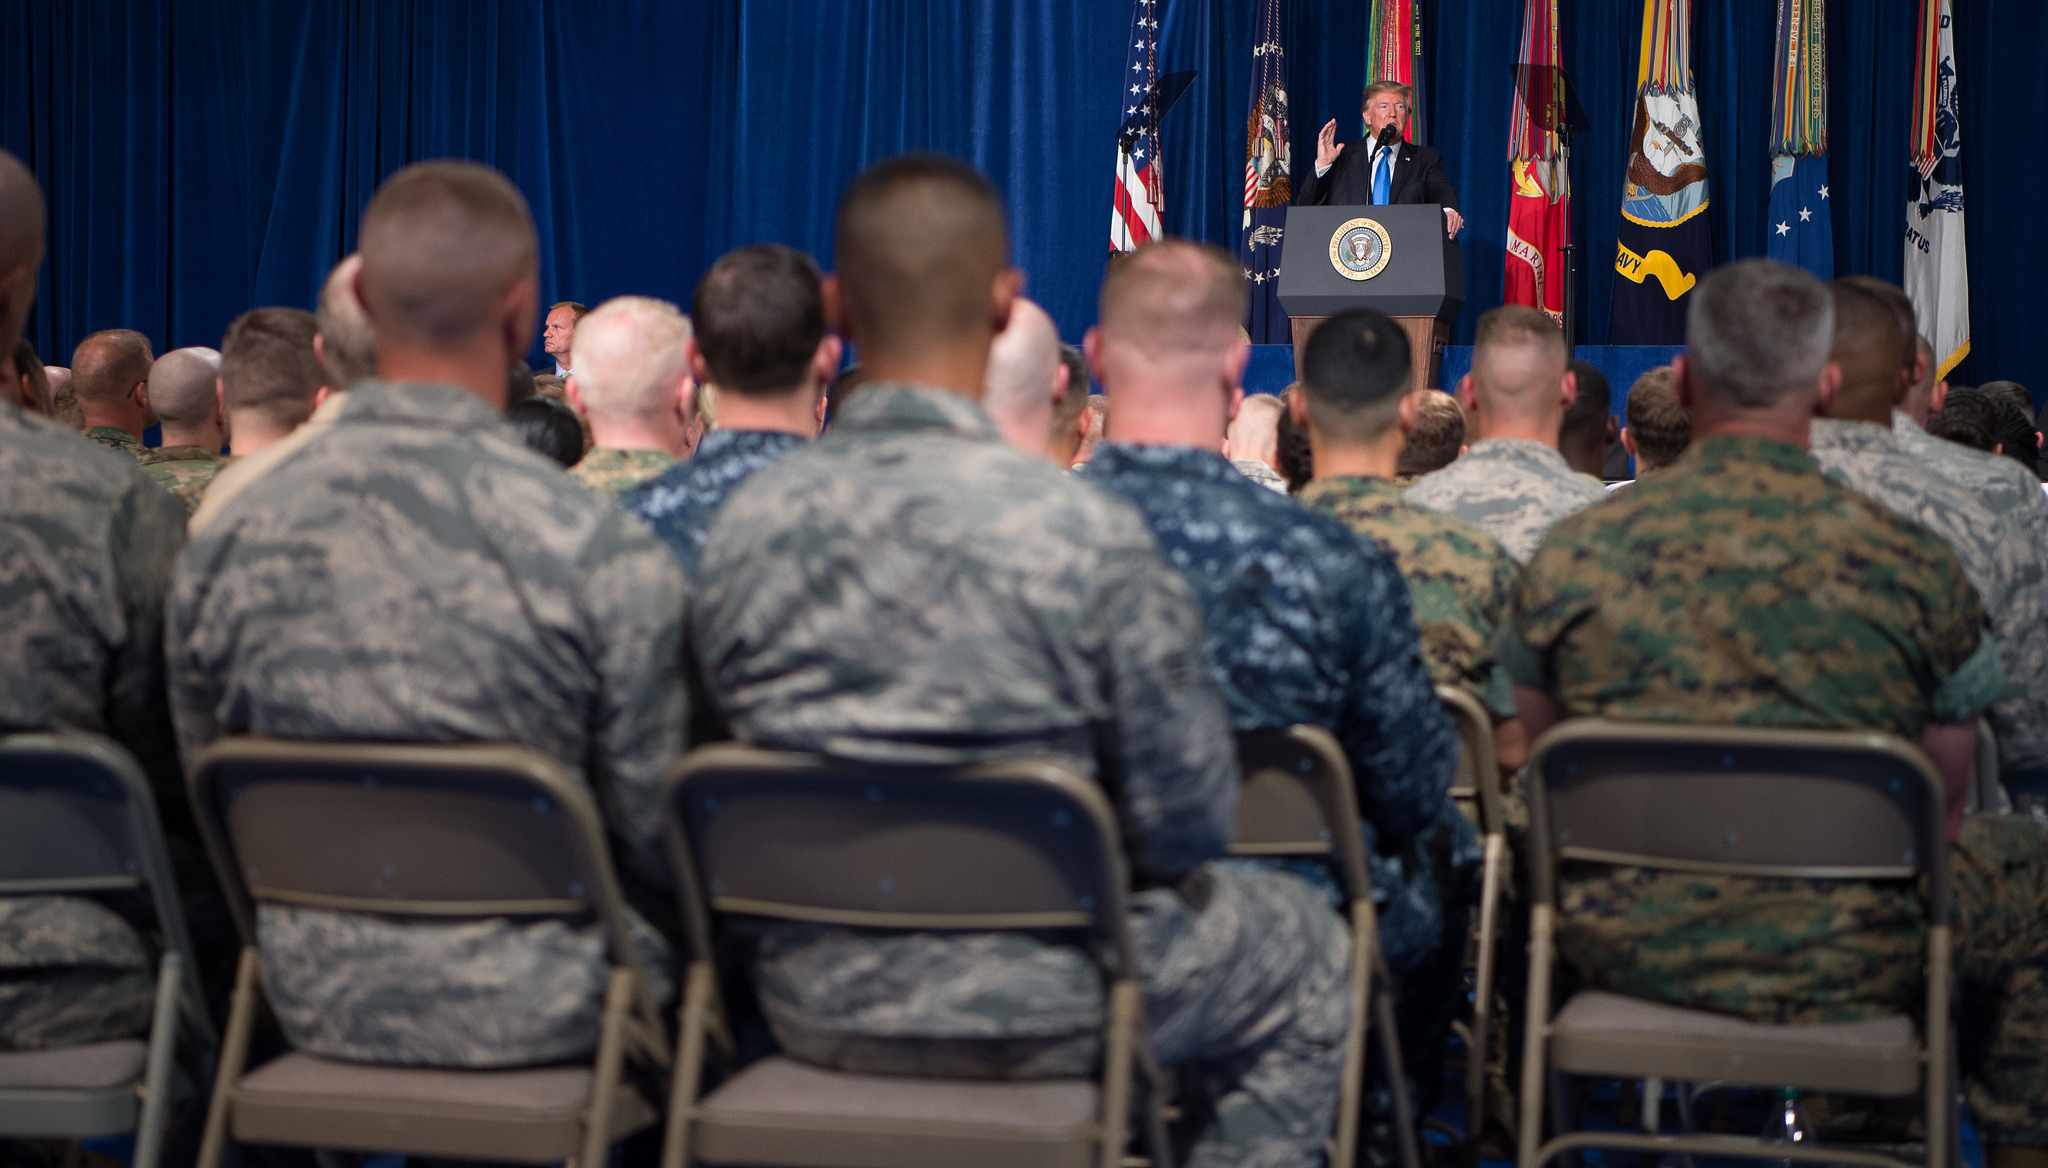 US President Donald Trump delivers his address on South Asia strategy at Fort Myer, Virginia, August 2017 (Photo: Flickr/Jim Mattis)